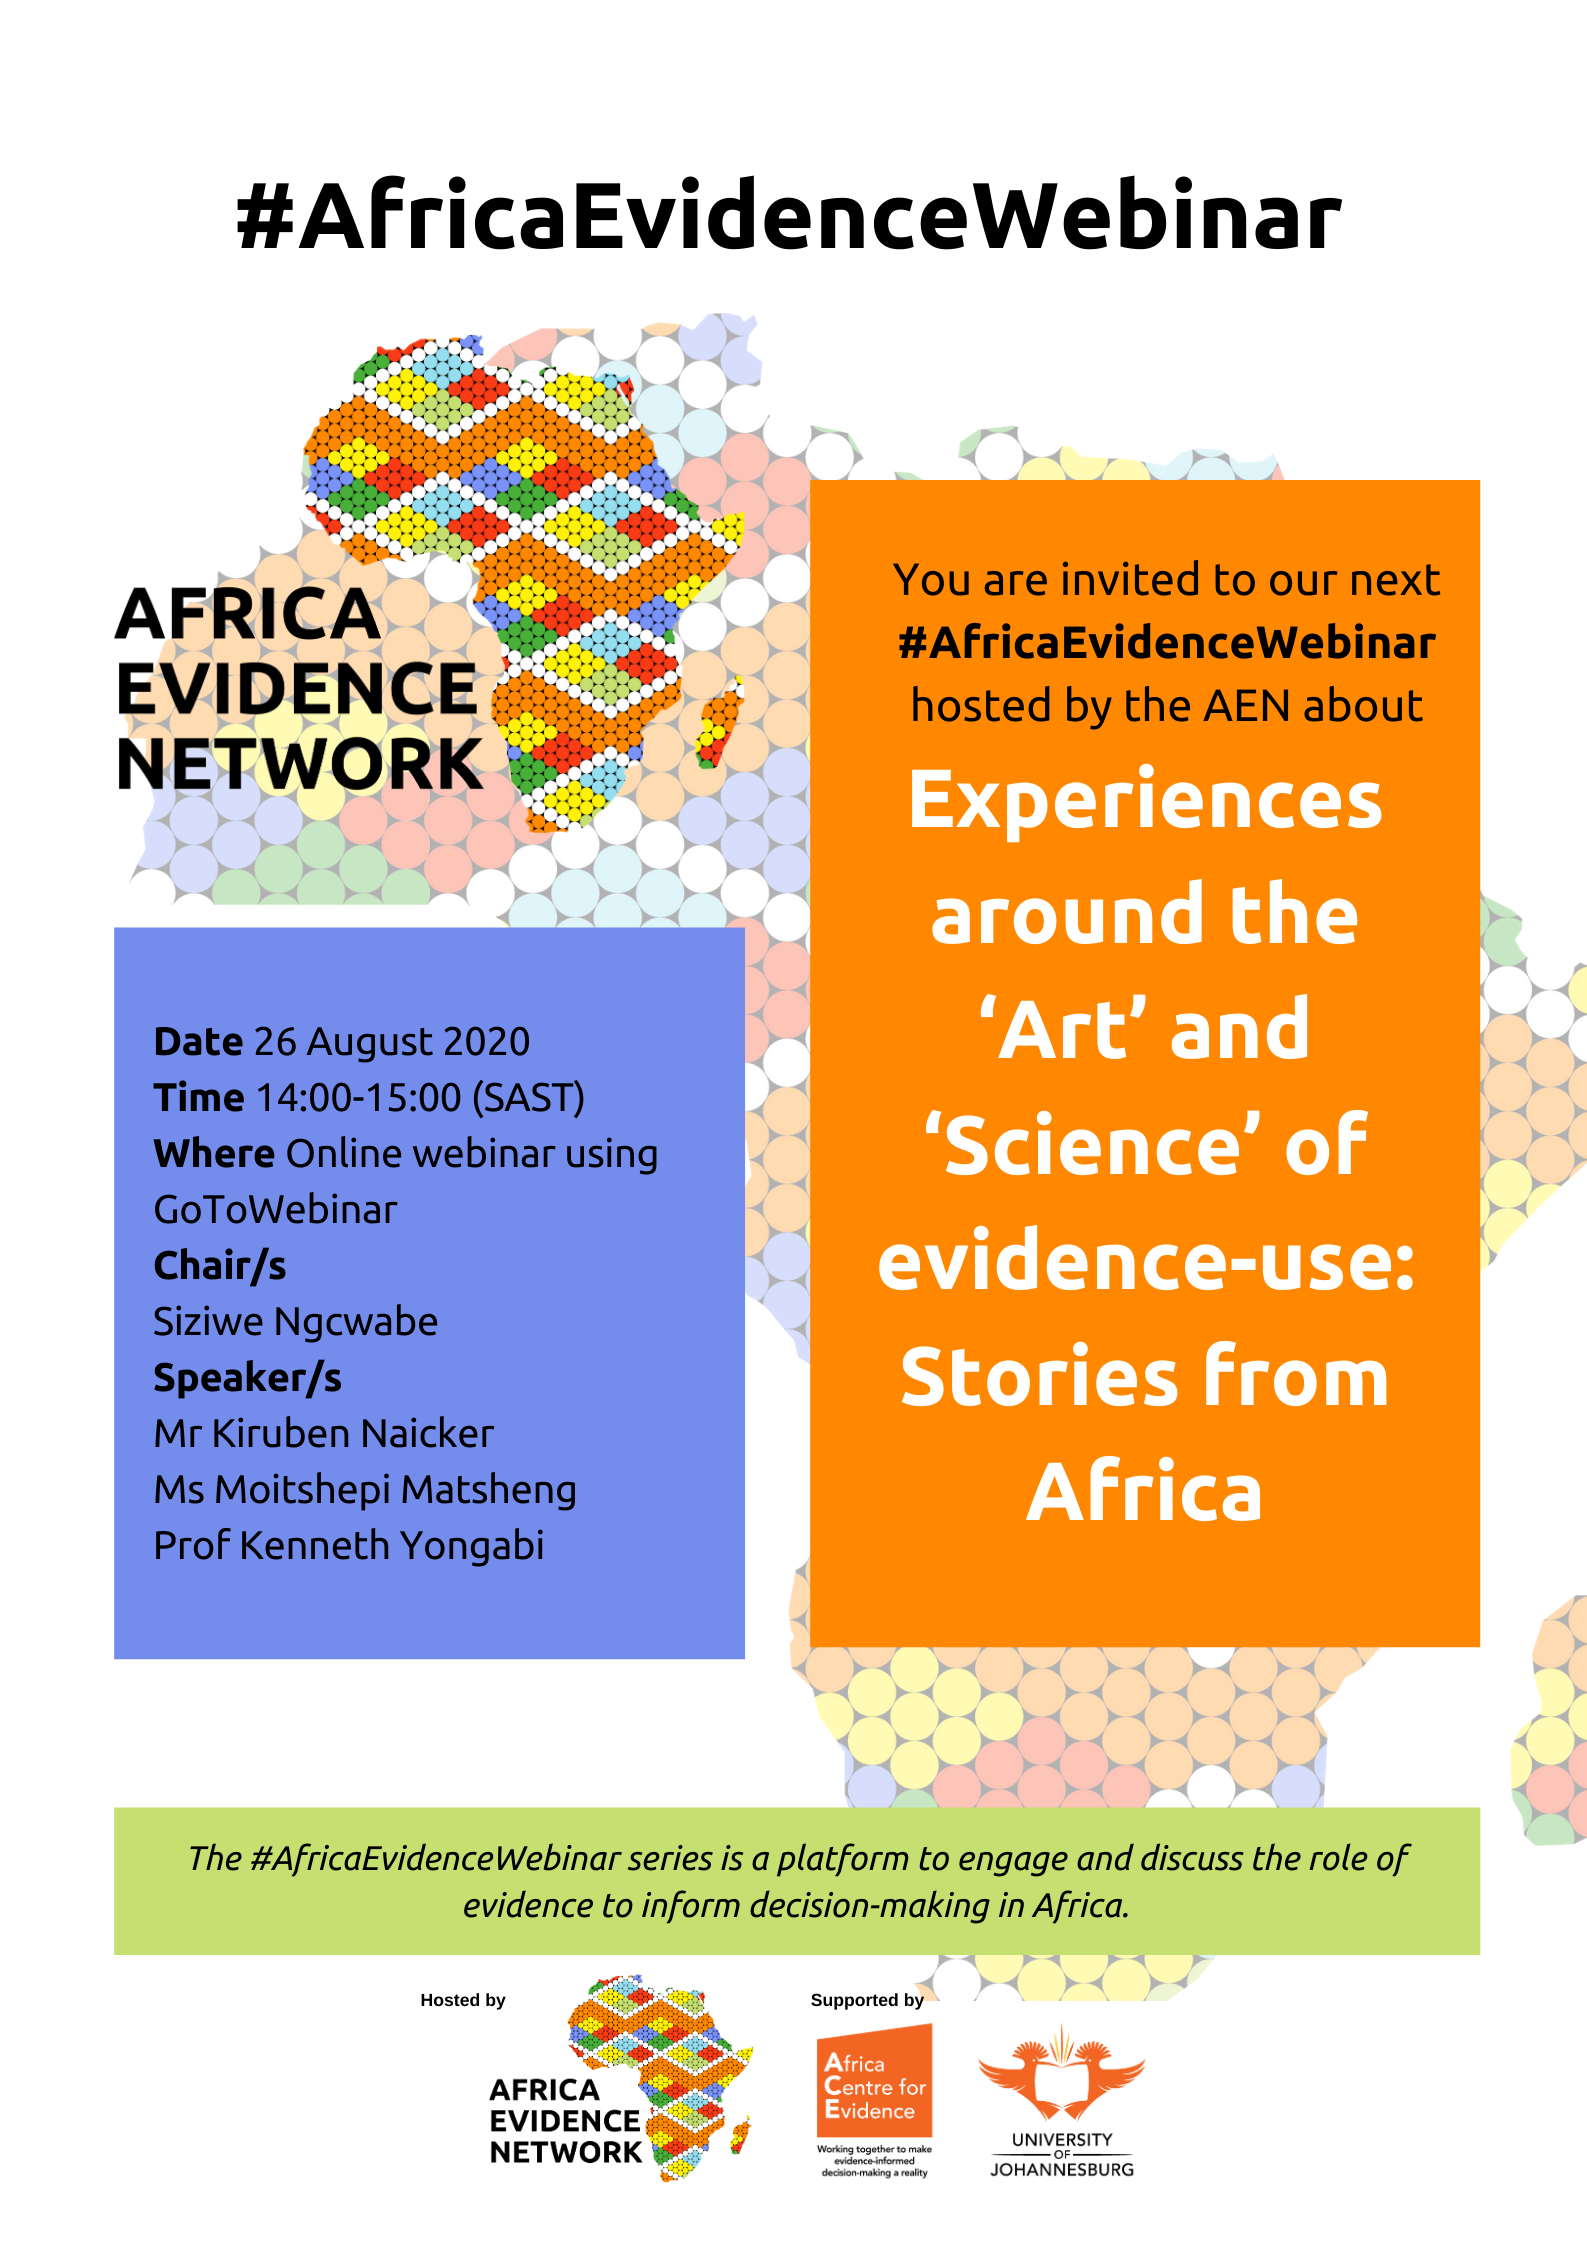 Experiences around the 'Art' and 'Science' of evidence-use: Stories from Africa